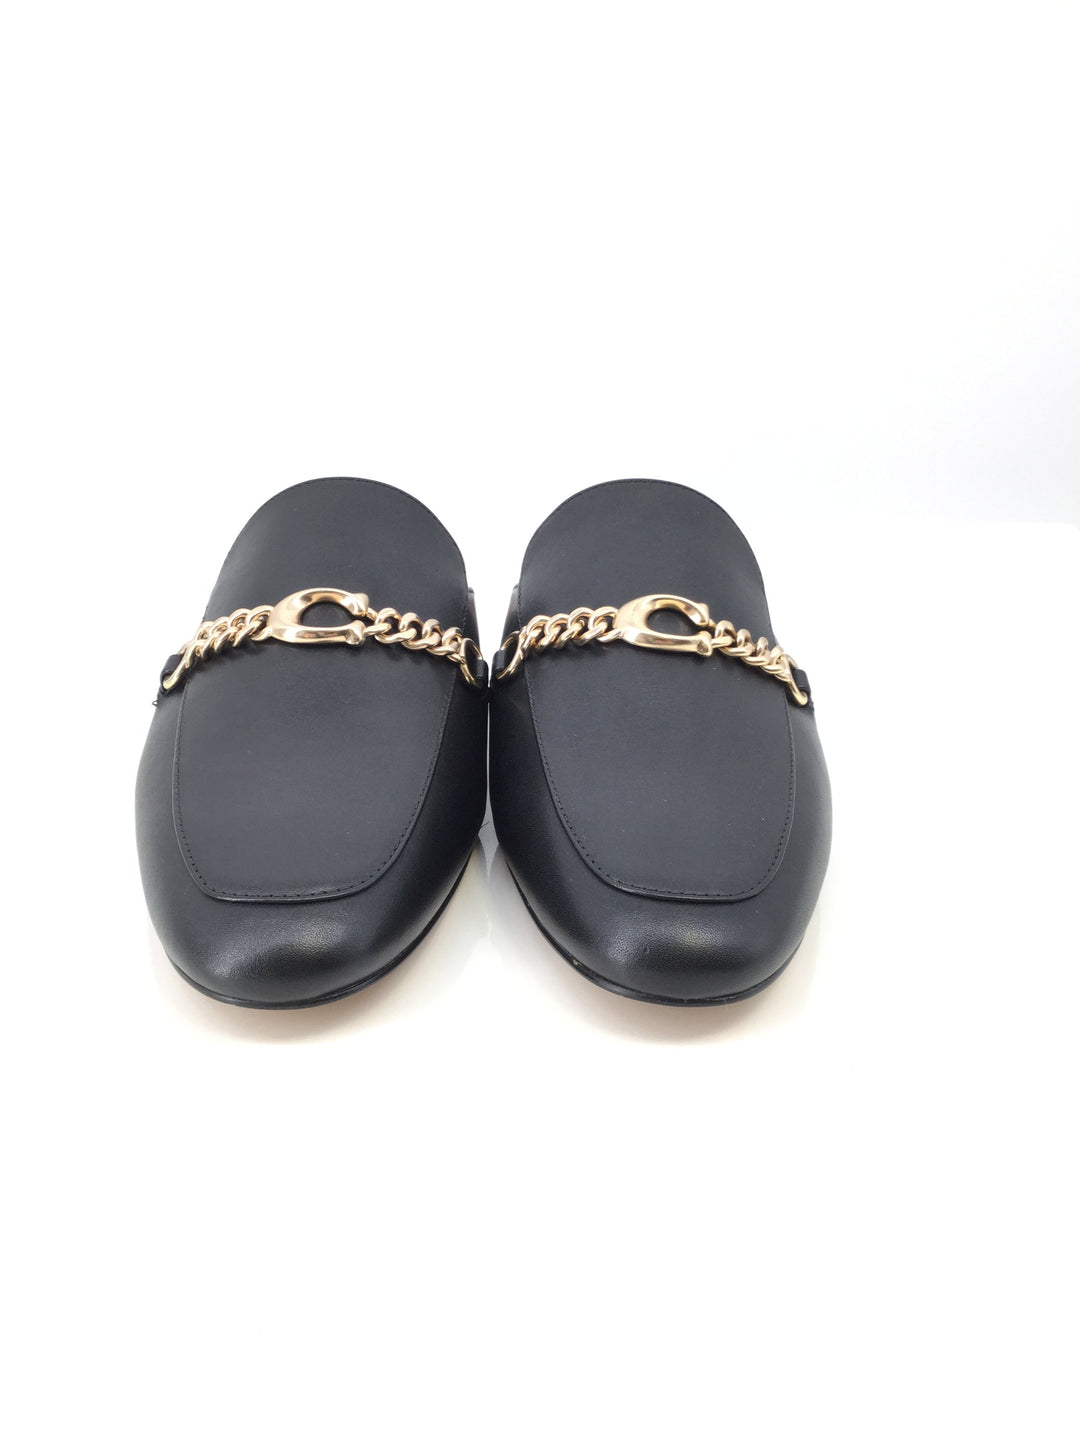 Coach Shoes Designer Size:9.5 - <P>BLACK COACH MULES WITH GOLD CHAIN DETAILING. SIZE 9.5.</P>